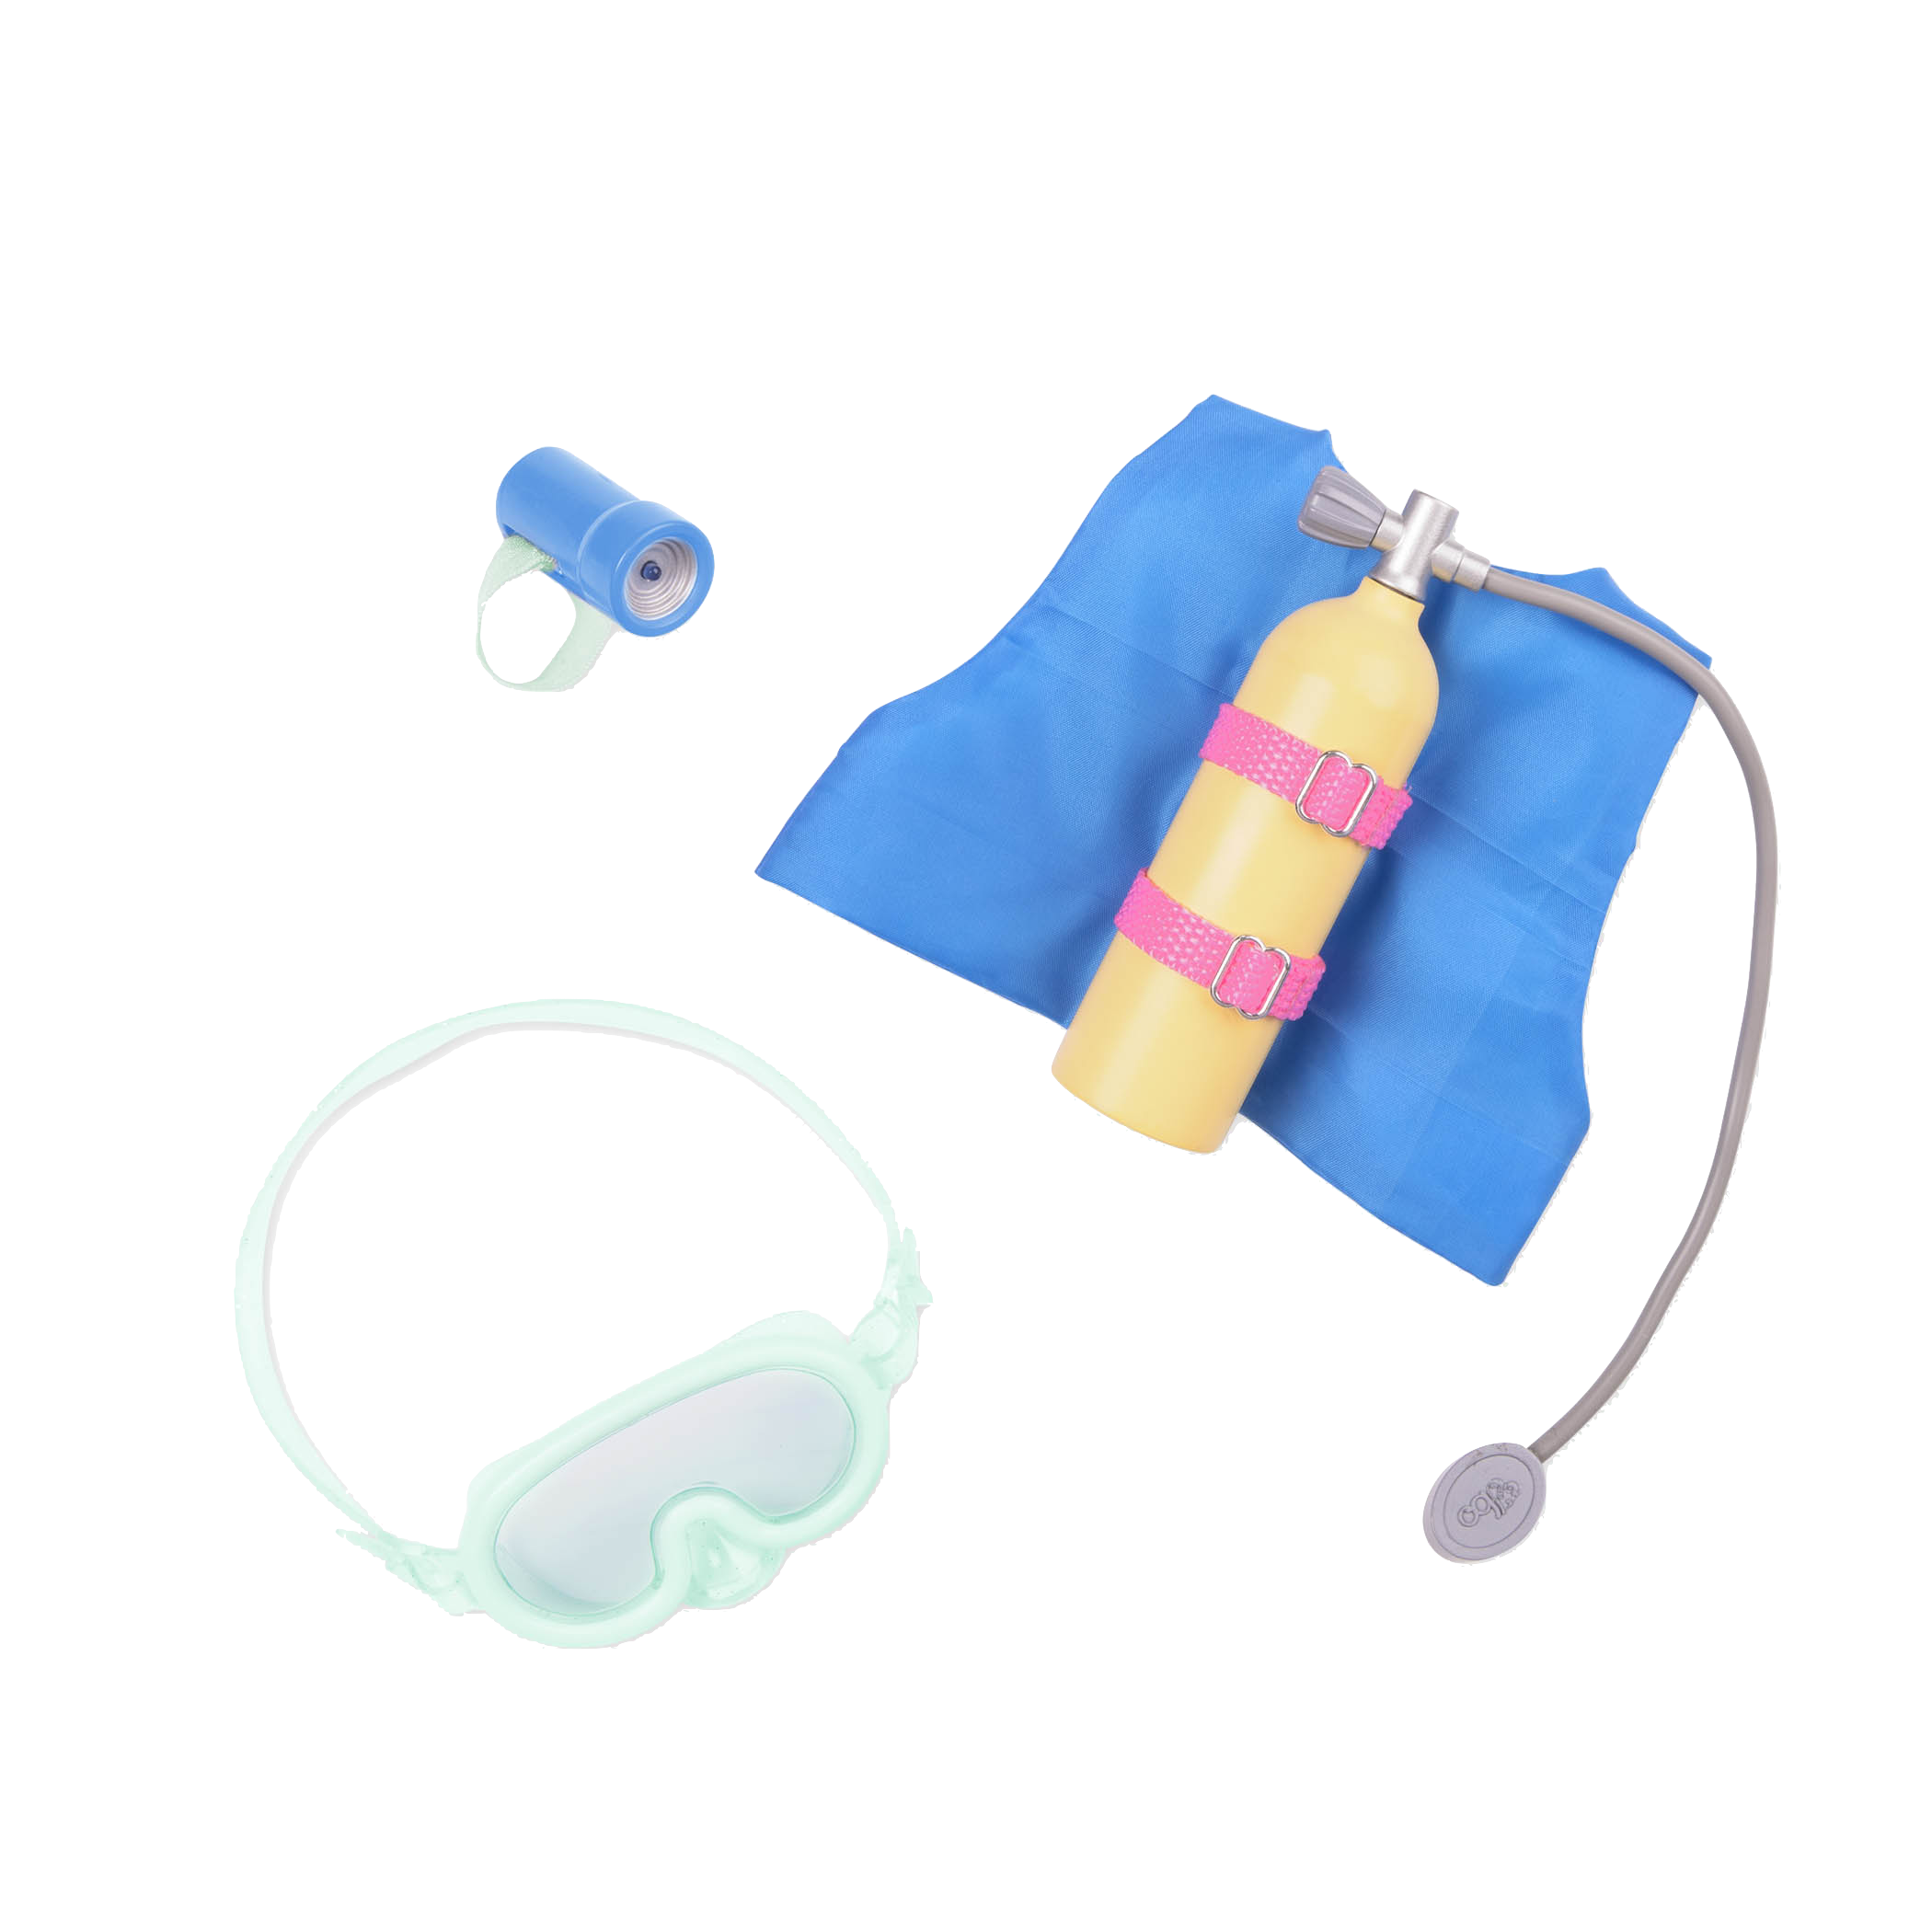 Detail of SCUBA accessories for dolls